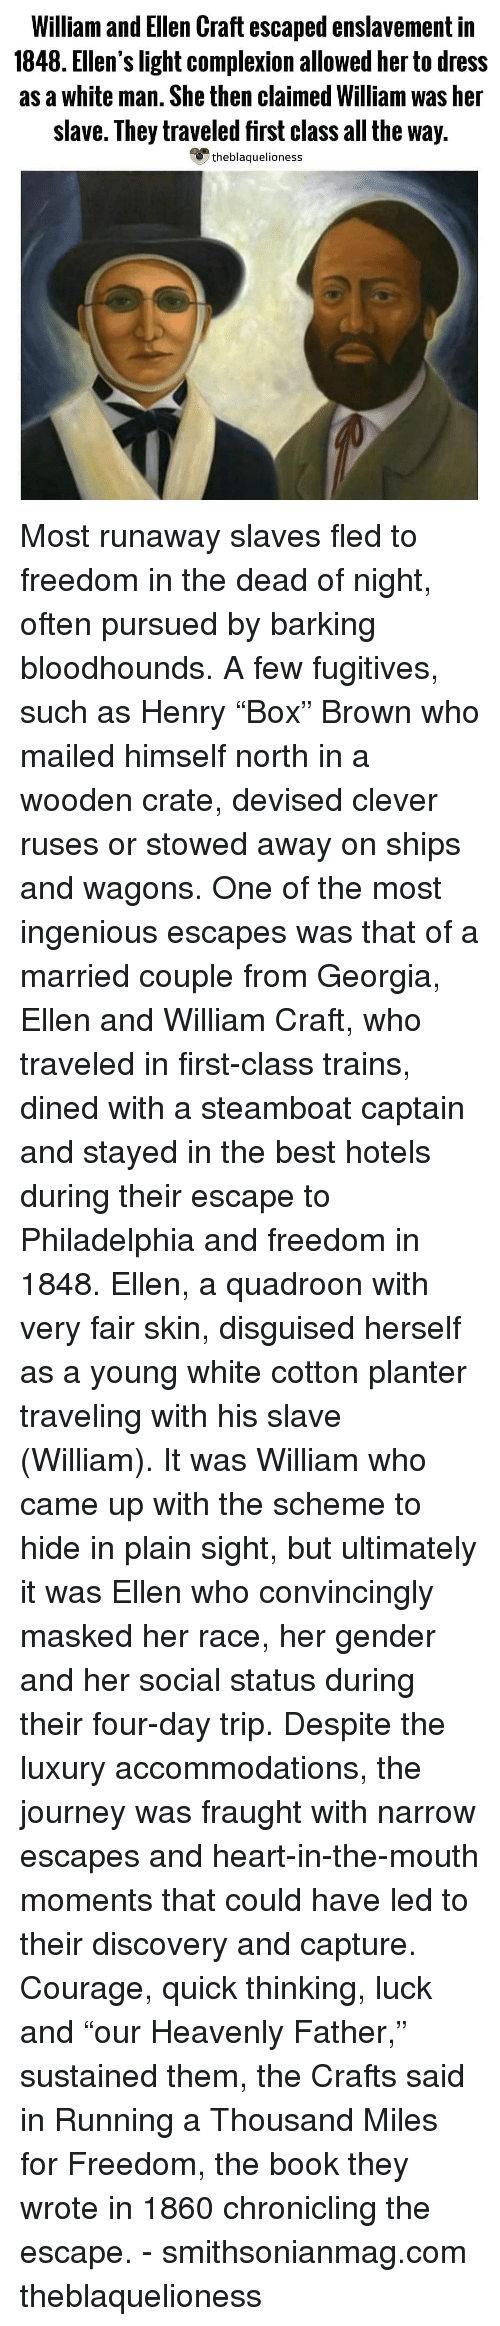 "heavenly: William and Ellen Craft escaped enslavement in  1848. Ellen's light complexion allowed her to dress  as a white man. She then claimed William was her  slave. They traveled first class all the way.  theblaquelioness Most runaway slaves fled to freedom in the dead of night, often pursued by barking bloodhounds. A few fugitives, such as Henry ""Box"" Brown who mailed himself north in a wooden crate, devised clever ruses or stowed away on ships and wagons. One of the most ingenious escapes was that of a married couple from Georgia, Ellen and William Craft, who traveled in first-class trains, dined with a steamboat captain and stayed in the best hotels during their escape to Philadelphia and freedom in 1848. Ellen, a quadroon with very fair skin, disguised herself as a young white cotton planter traveling with his slave (William). It was William who came up with the scheme to hide in plain sight, but ultimately it was Ellen who convincingly masked her race, her gender and her social status during their four-day trip. Despite the luxury accommodations, the journey was fraught with narrow escapes and heart-in-the-mouth moments that could have led to their discovery and capture. Courage, quick thinking, luck and ""our Heavenly Father,"" sustained them, the Crafts said in Running a Thousand Miles for Freedom, the book they wrote in 1860 chronicling the escape. - smithsonianmag.com theblaquelioness"